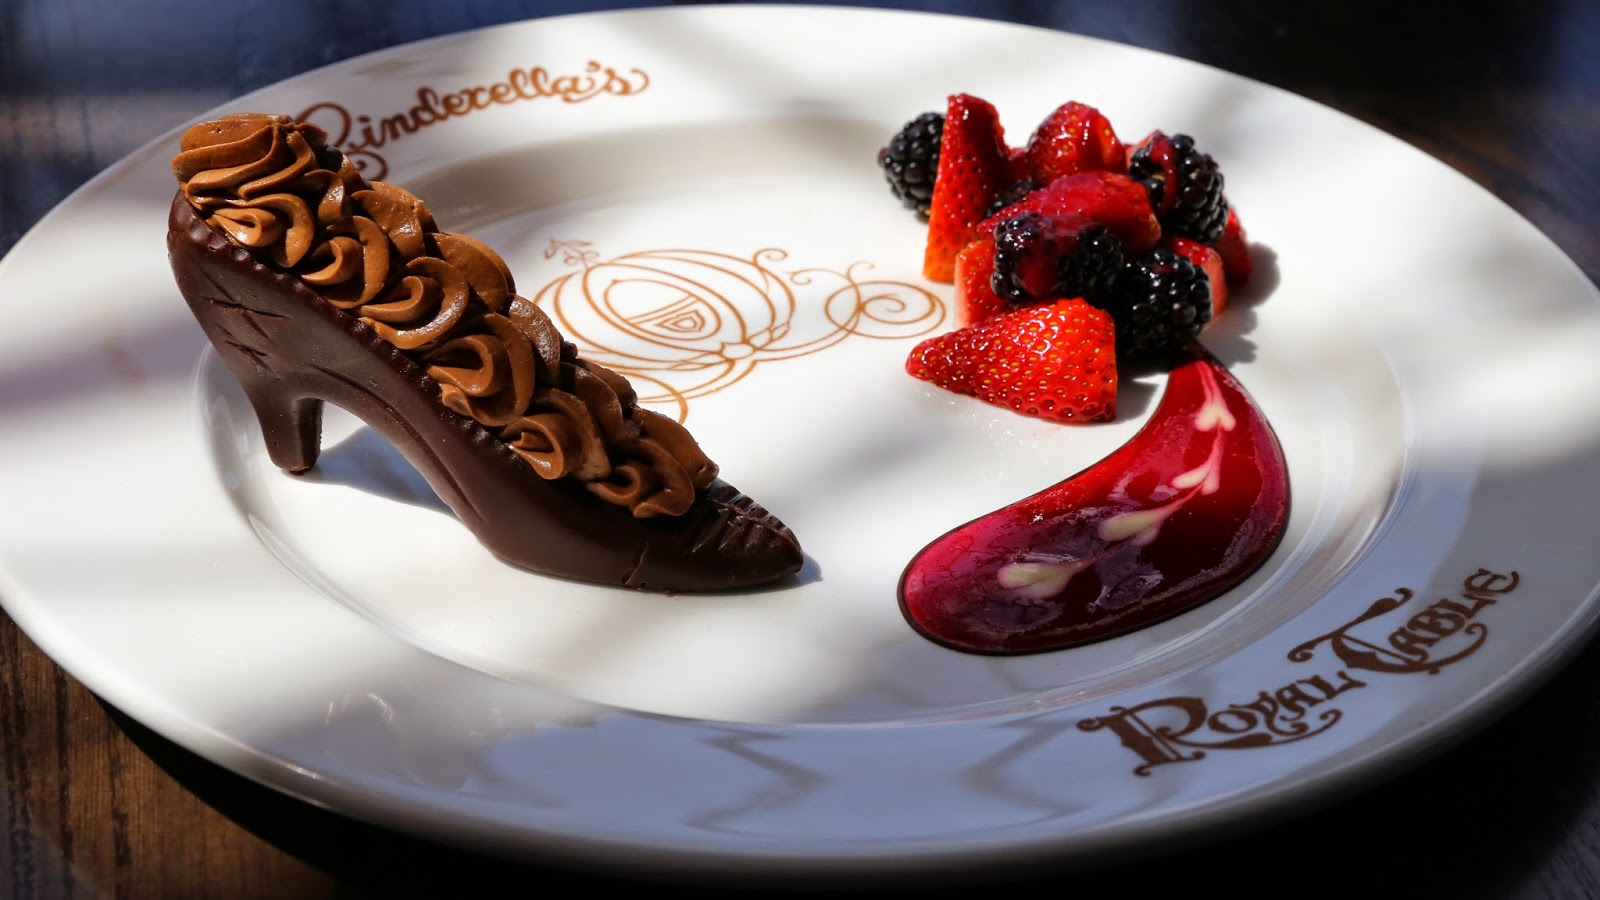 cinderella's signature slipper chocolate dessert